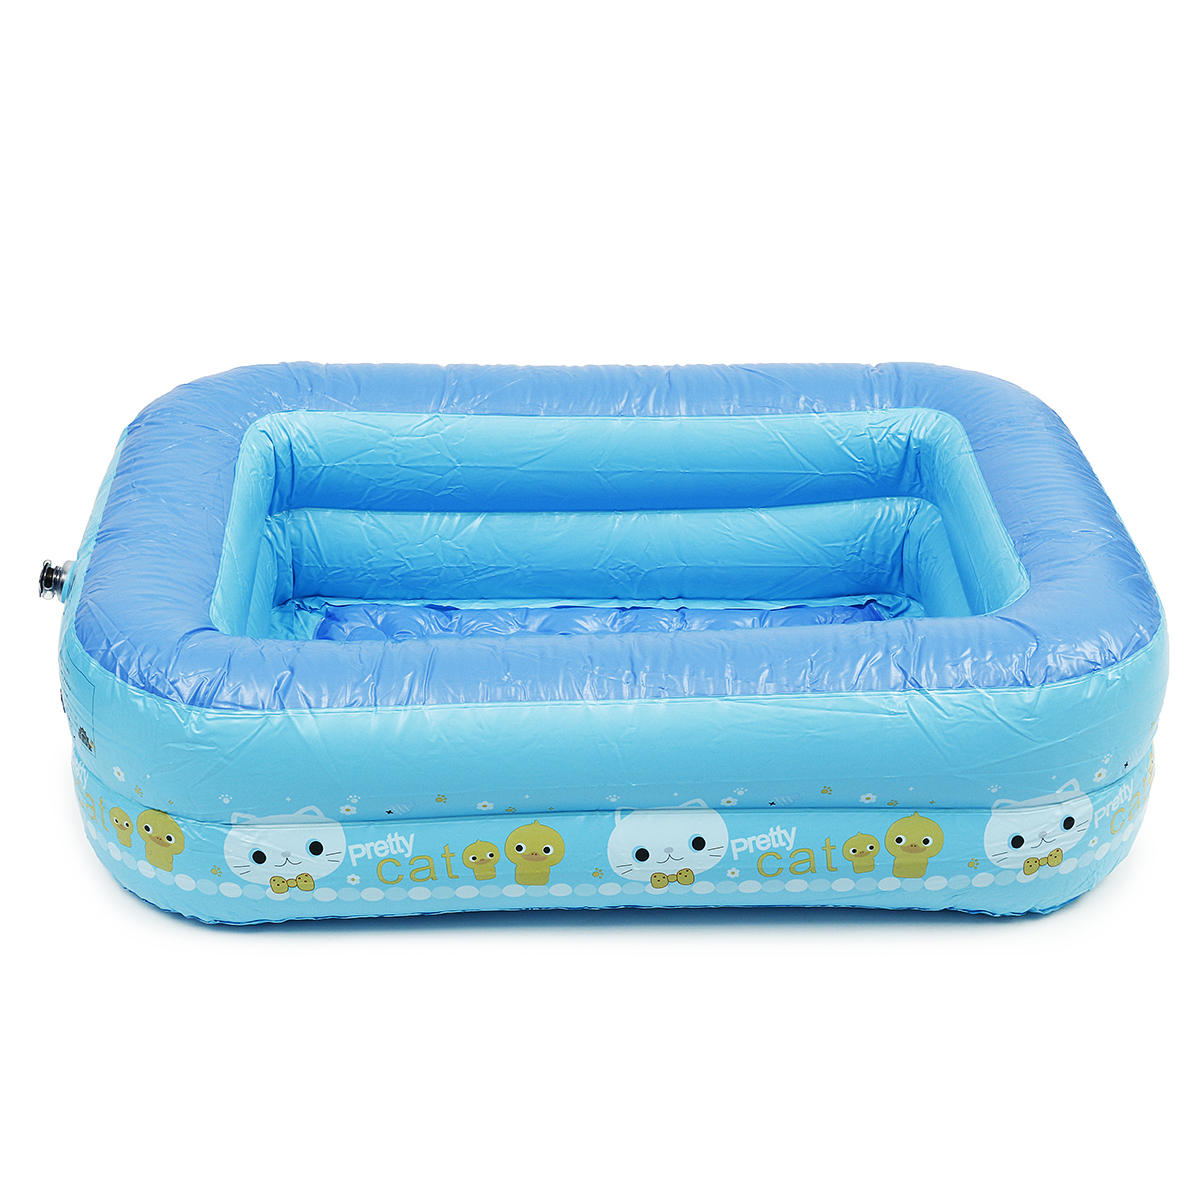 Baby kids Toddler Child PVC Inflatable Swimming Pools Bath Spas Summer Fun Toy - 3